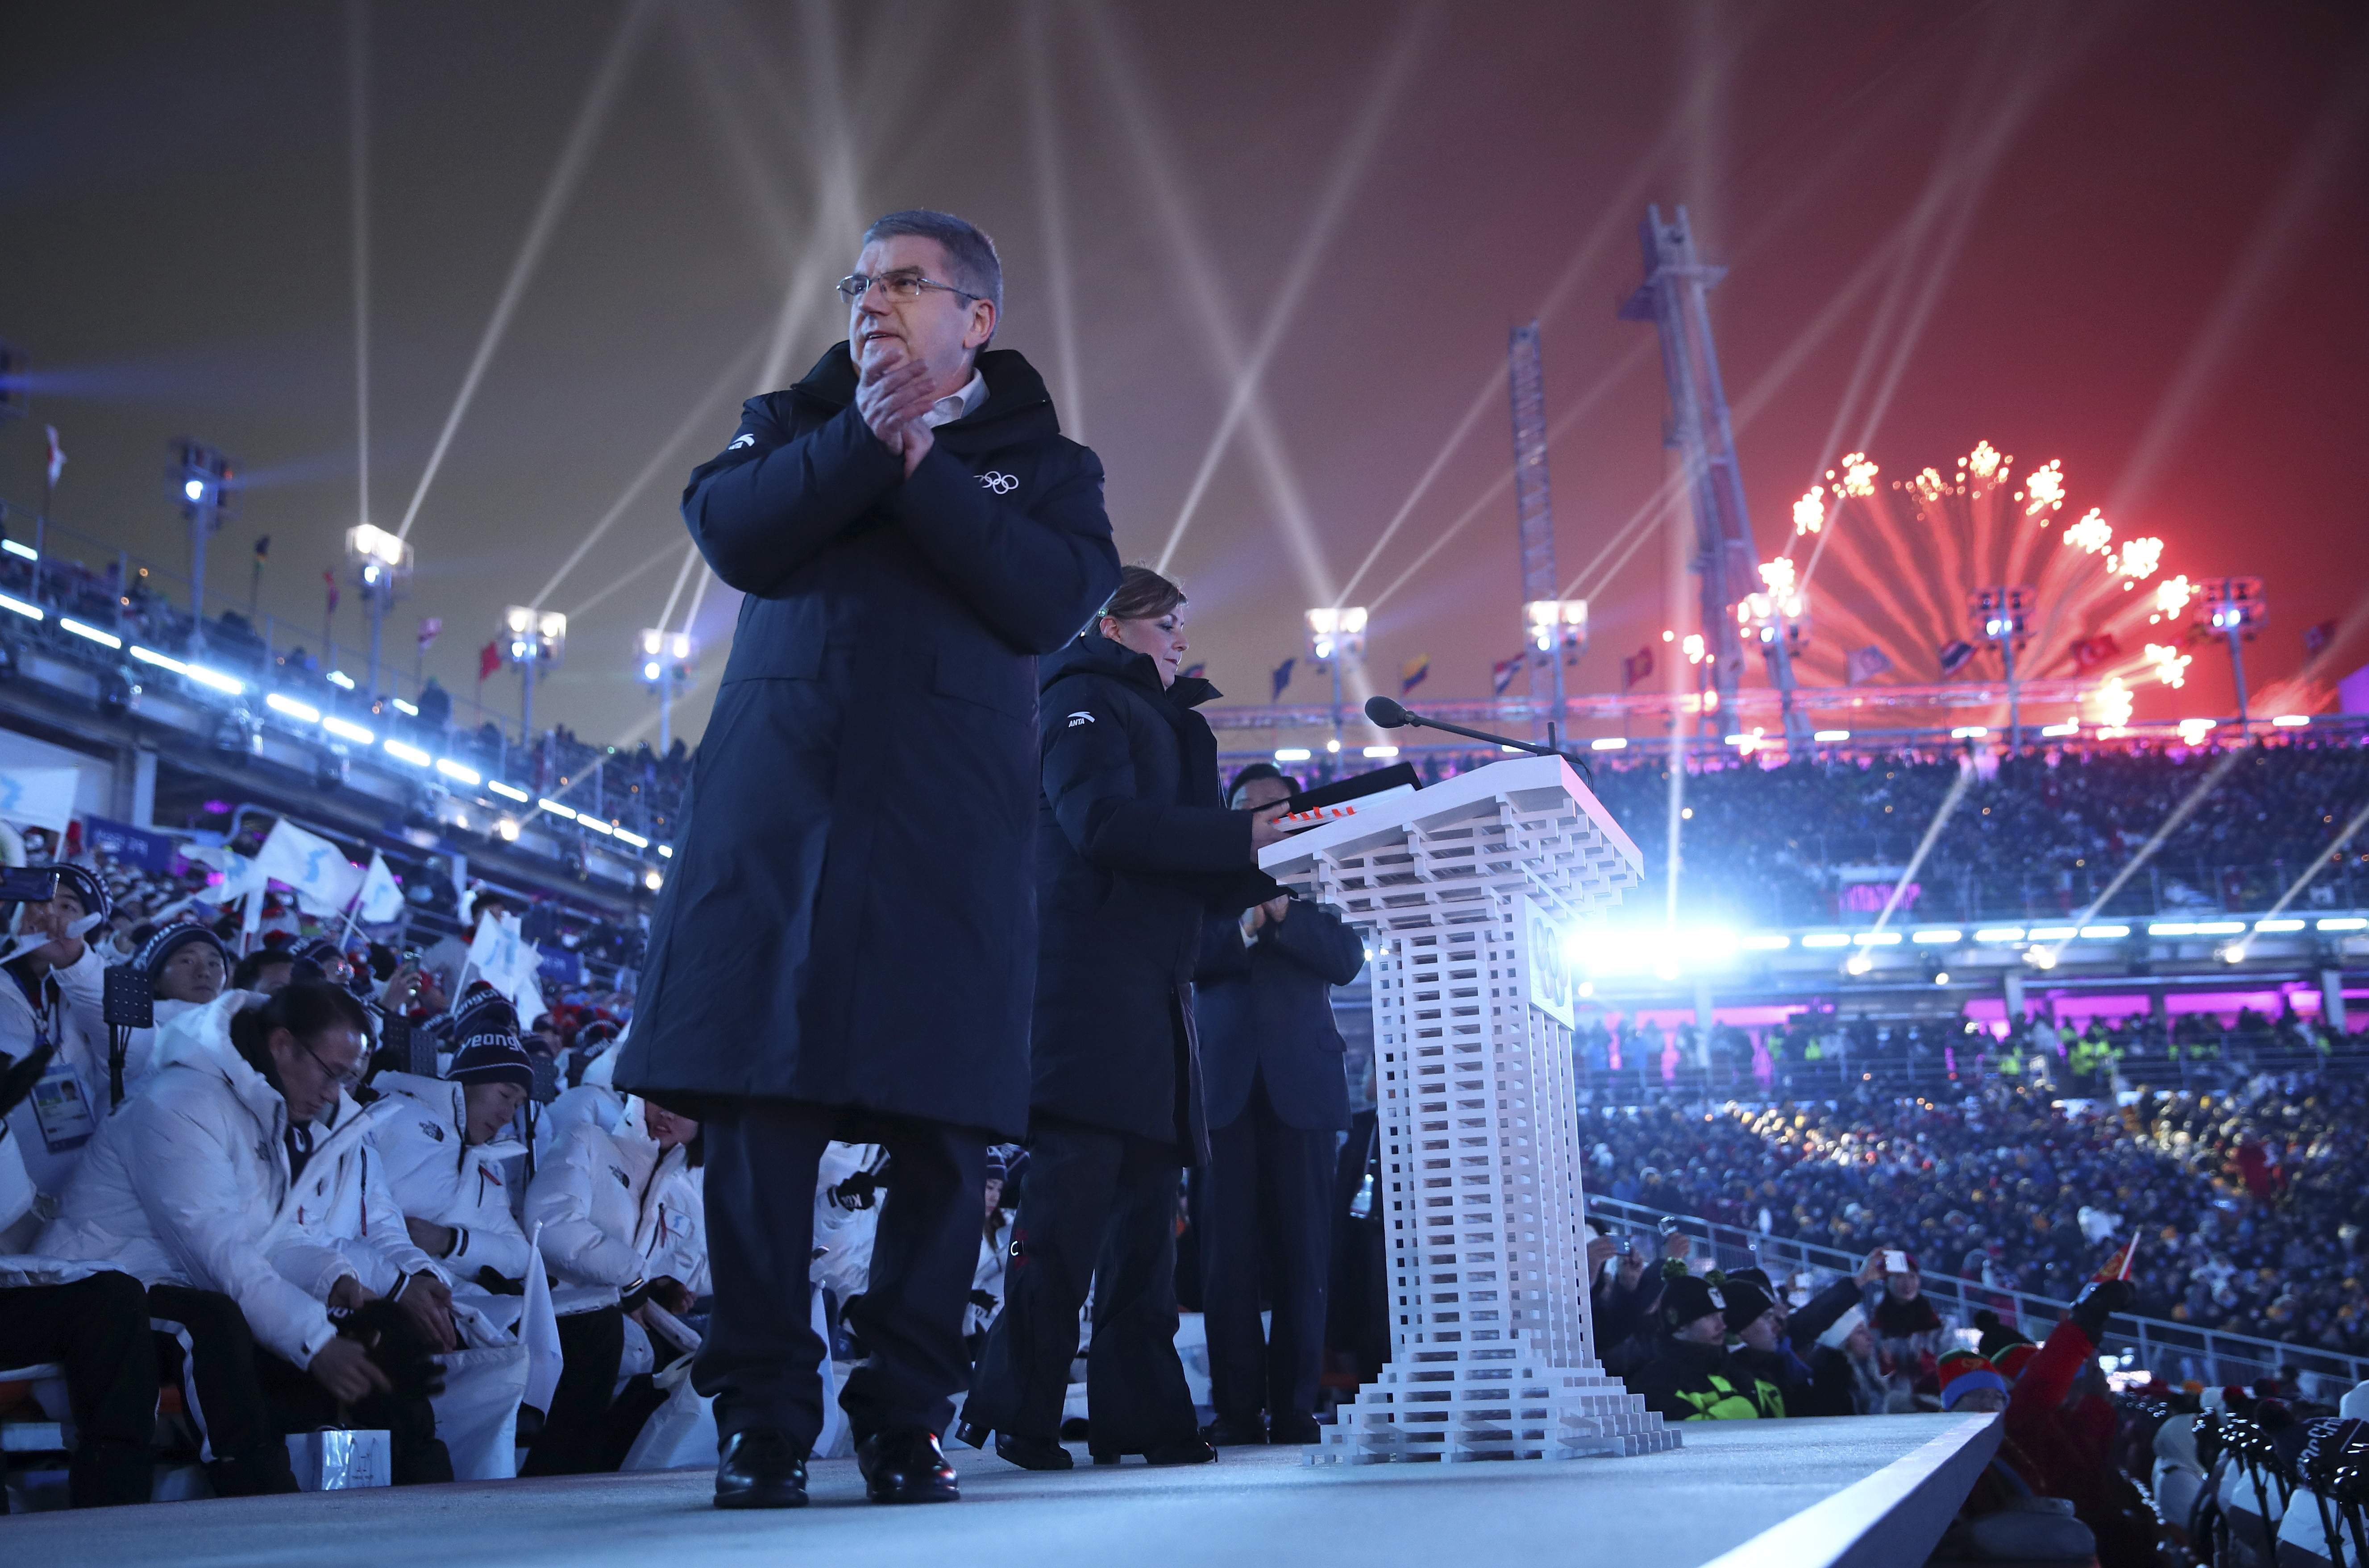 Thomas Bach, president of the International Olympic Committee, claps on stage during the opening ceremony of the 2018 Winter Olympics in Pyeongchang, South Korea, Friday, Feb. 9, 2018. (Clive Mason/Pool Photo via AP)